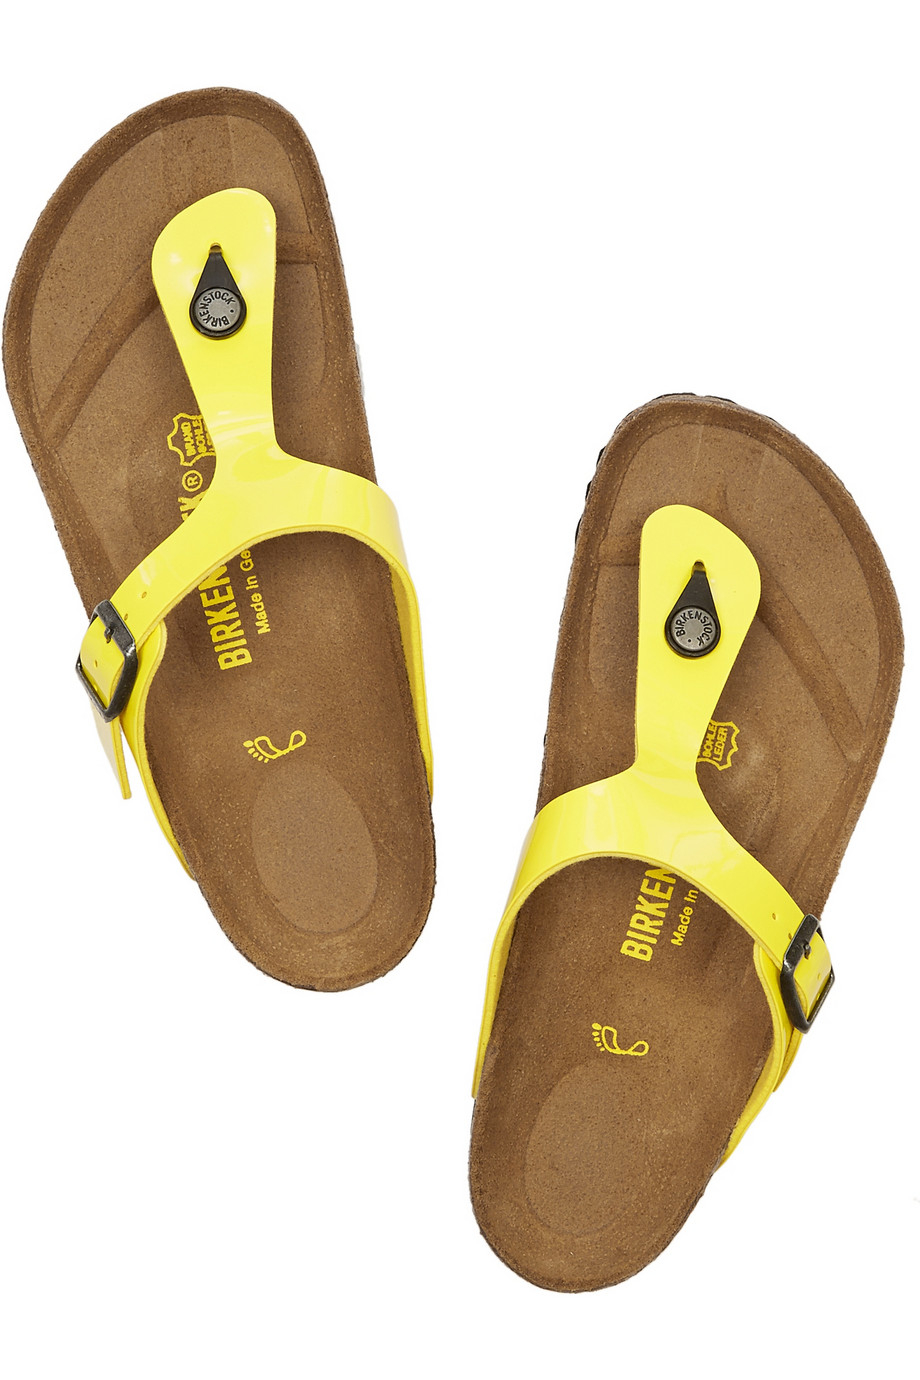 83470925bd8d Lyst - Birkenstock Gizeh Faux Patent-Leather Slides in Yellow